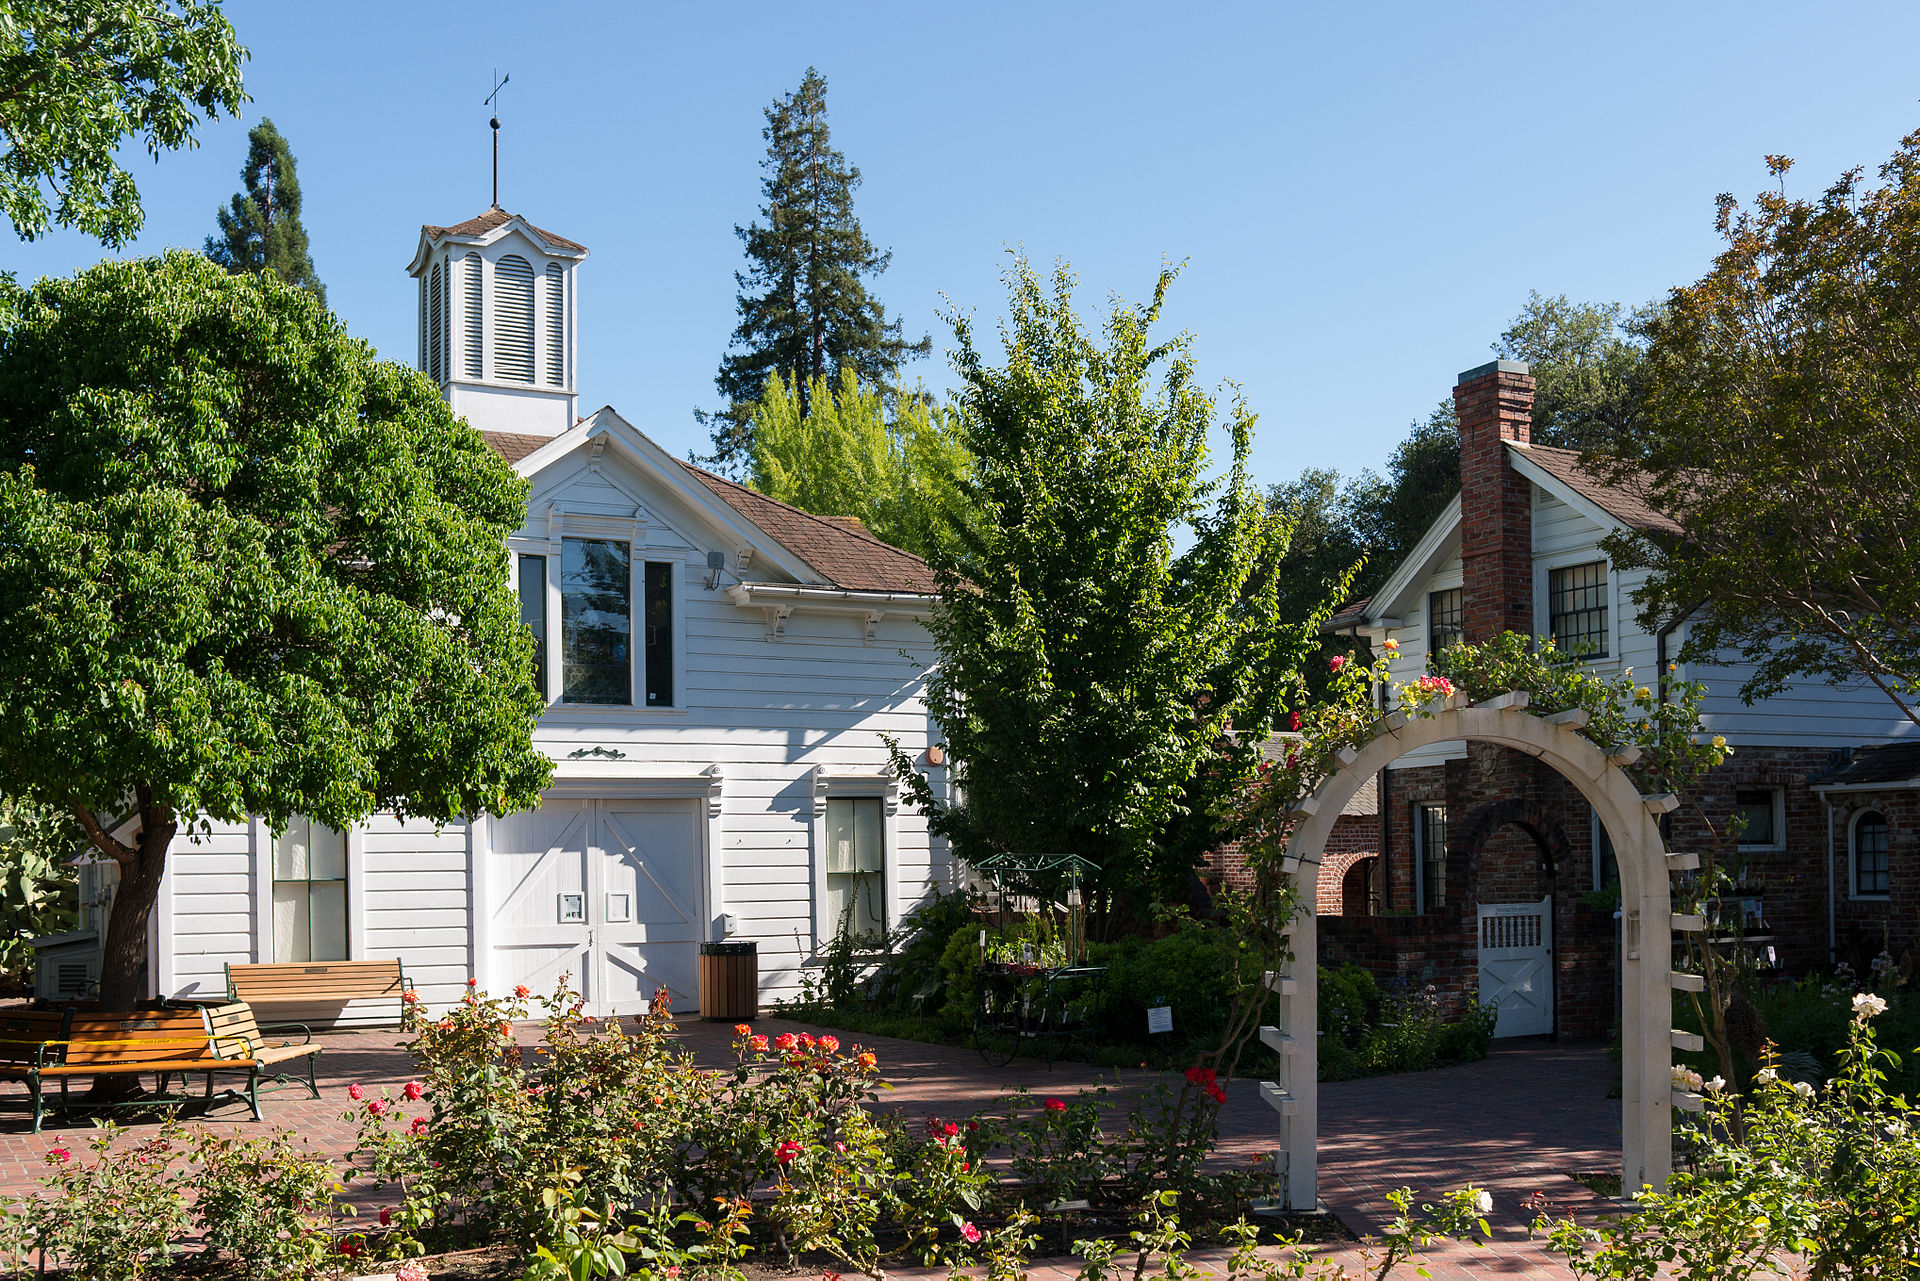 The Luther Burbank Home and Gardens